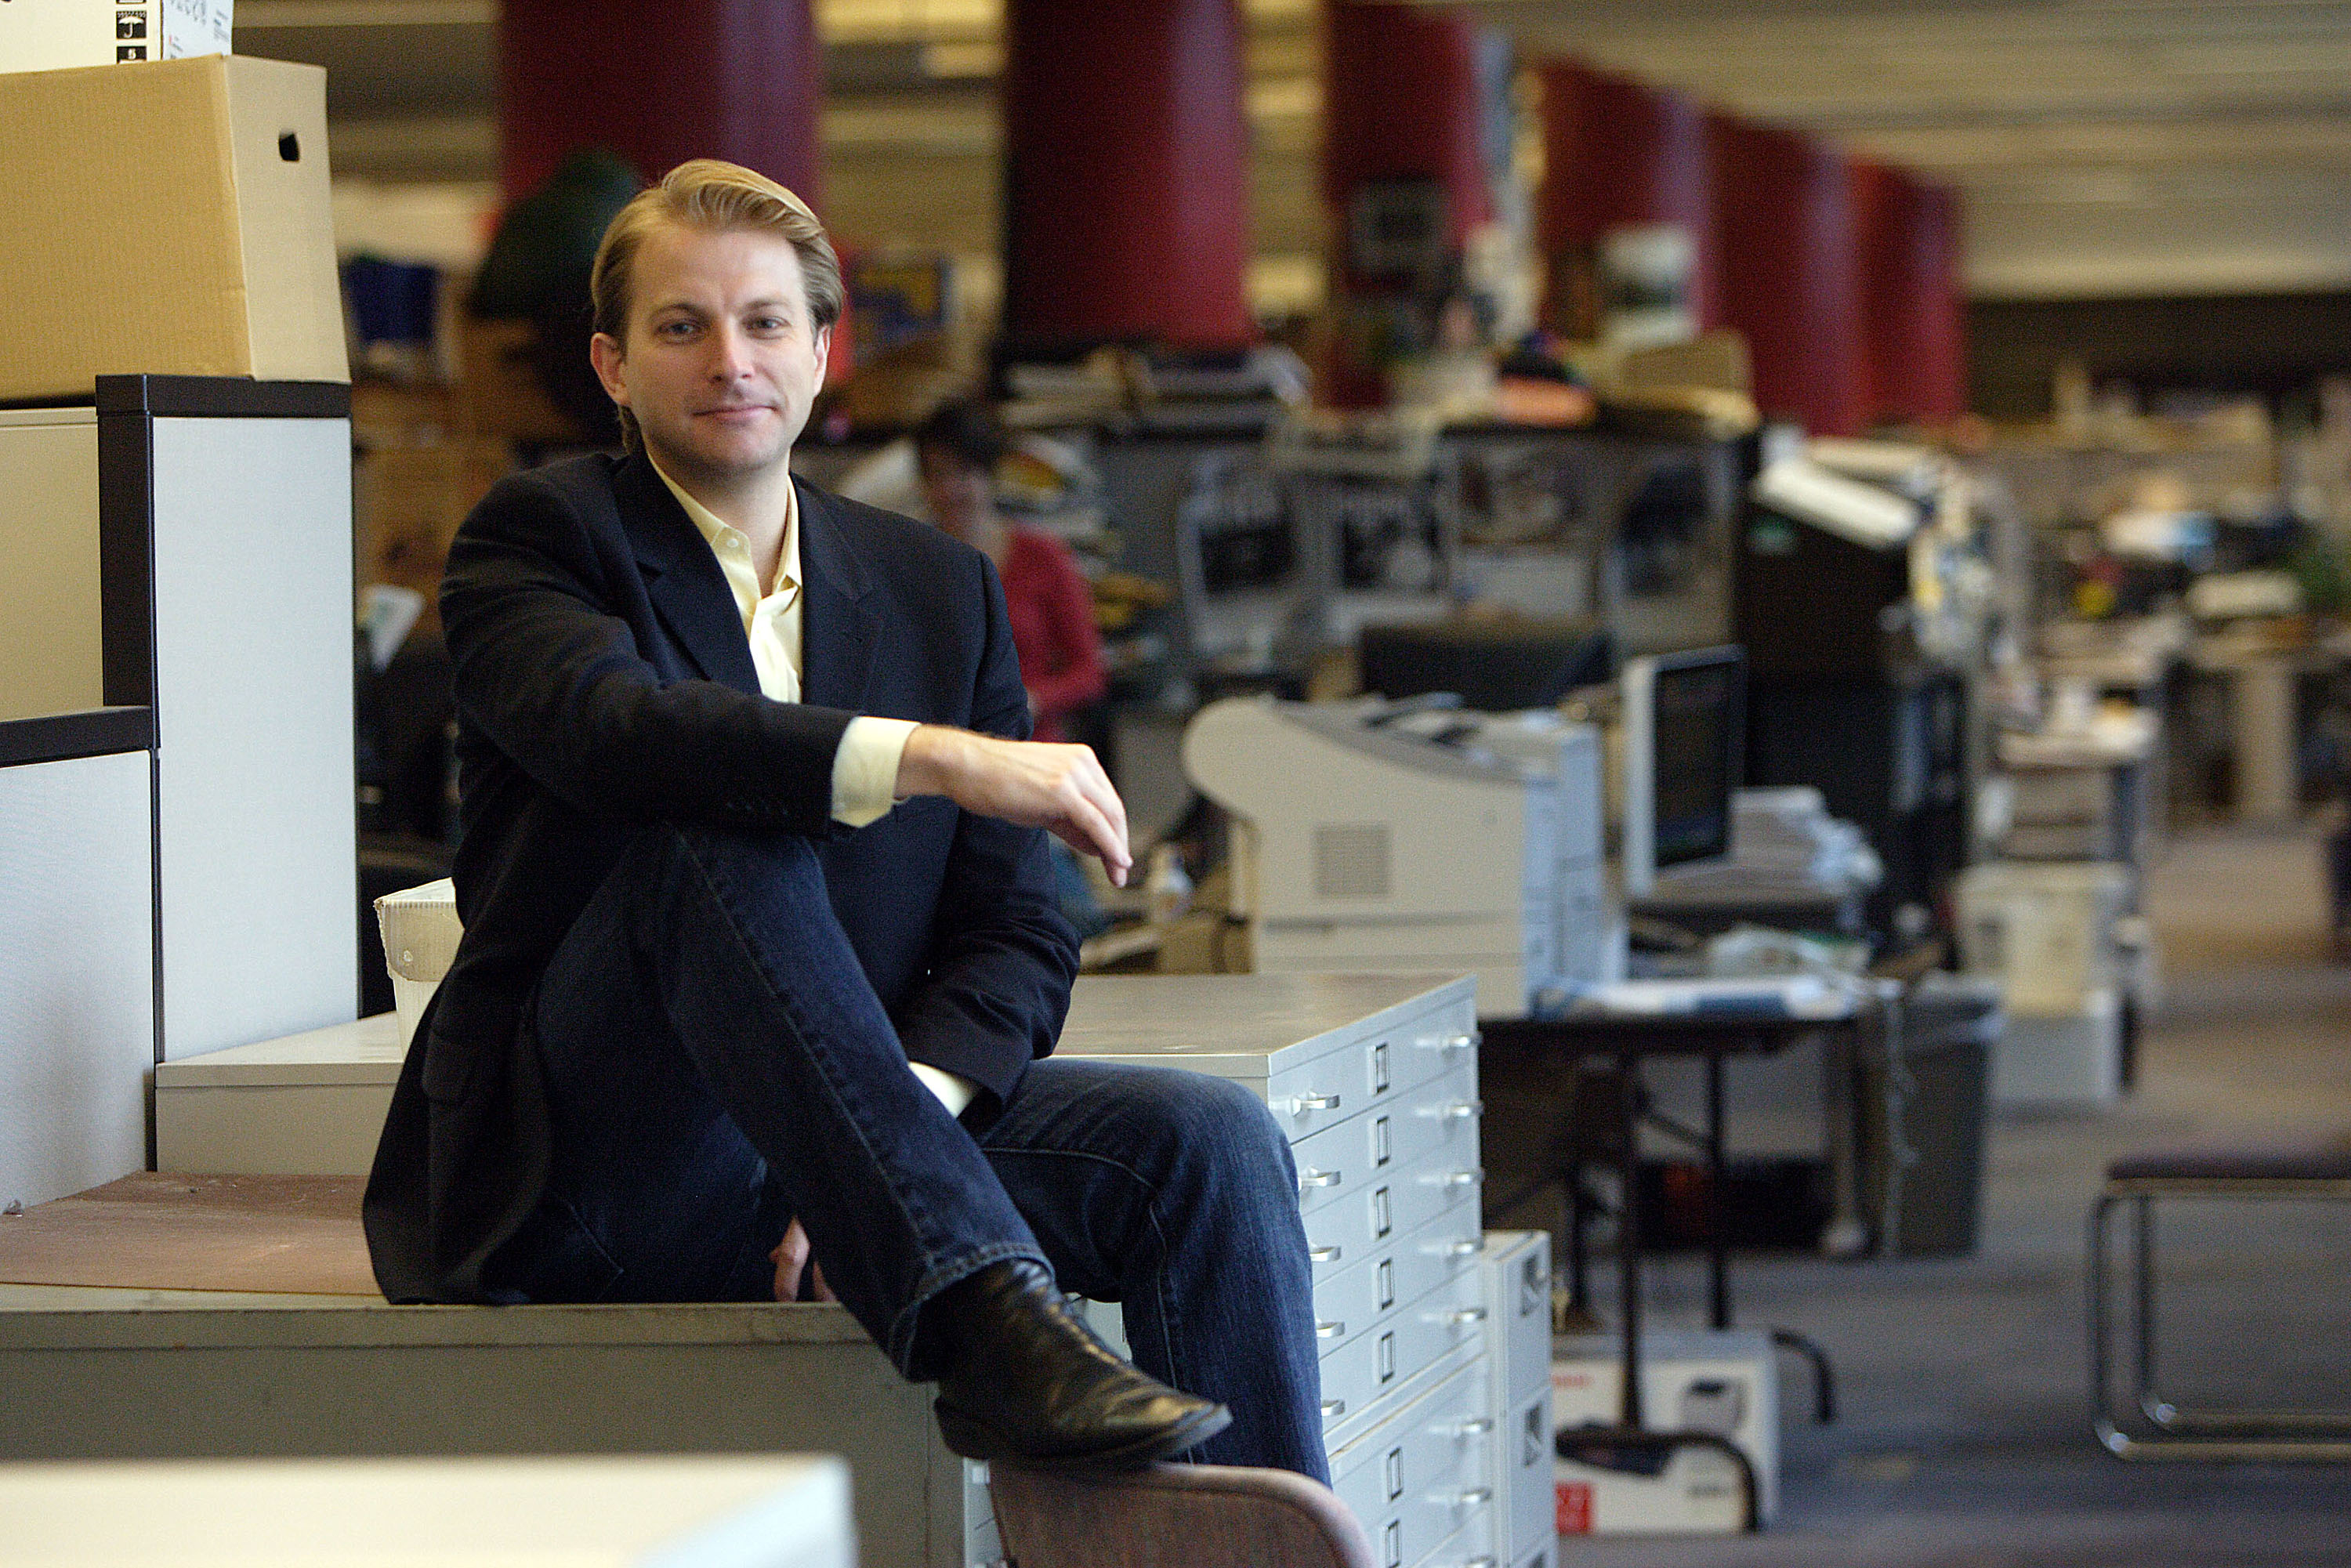 New York Daily News gossip columnist Ben Widdicombe photographed at his desk at the New York Daily News on March 29, 2005 in New York City.